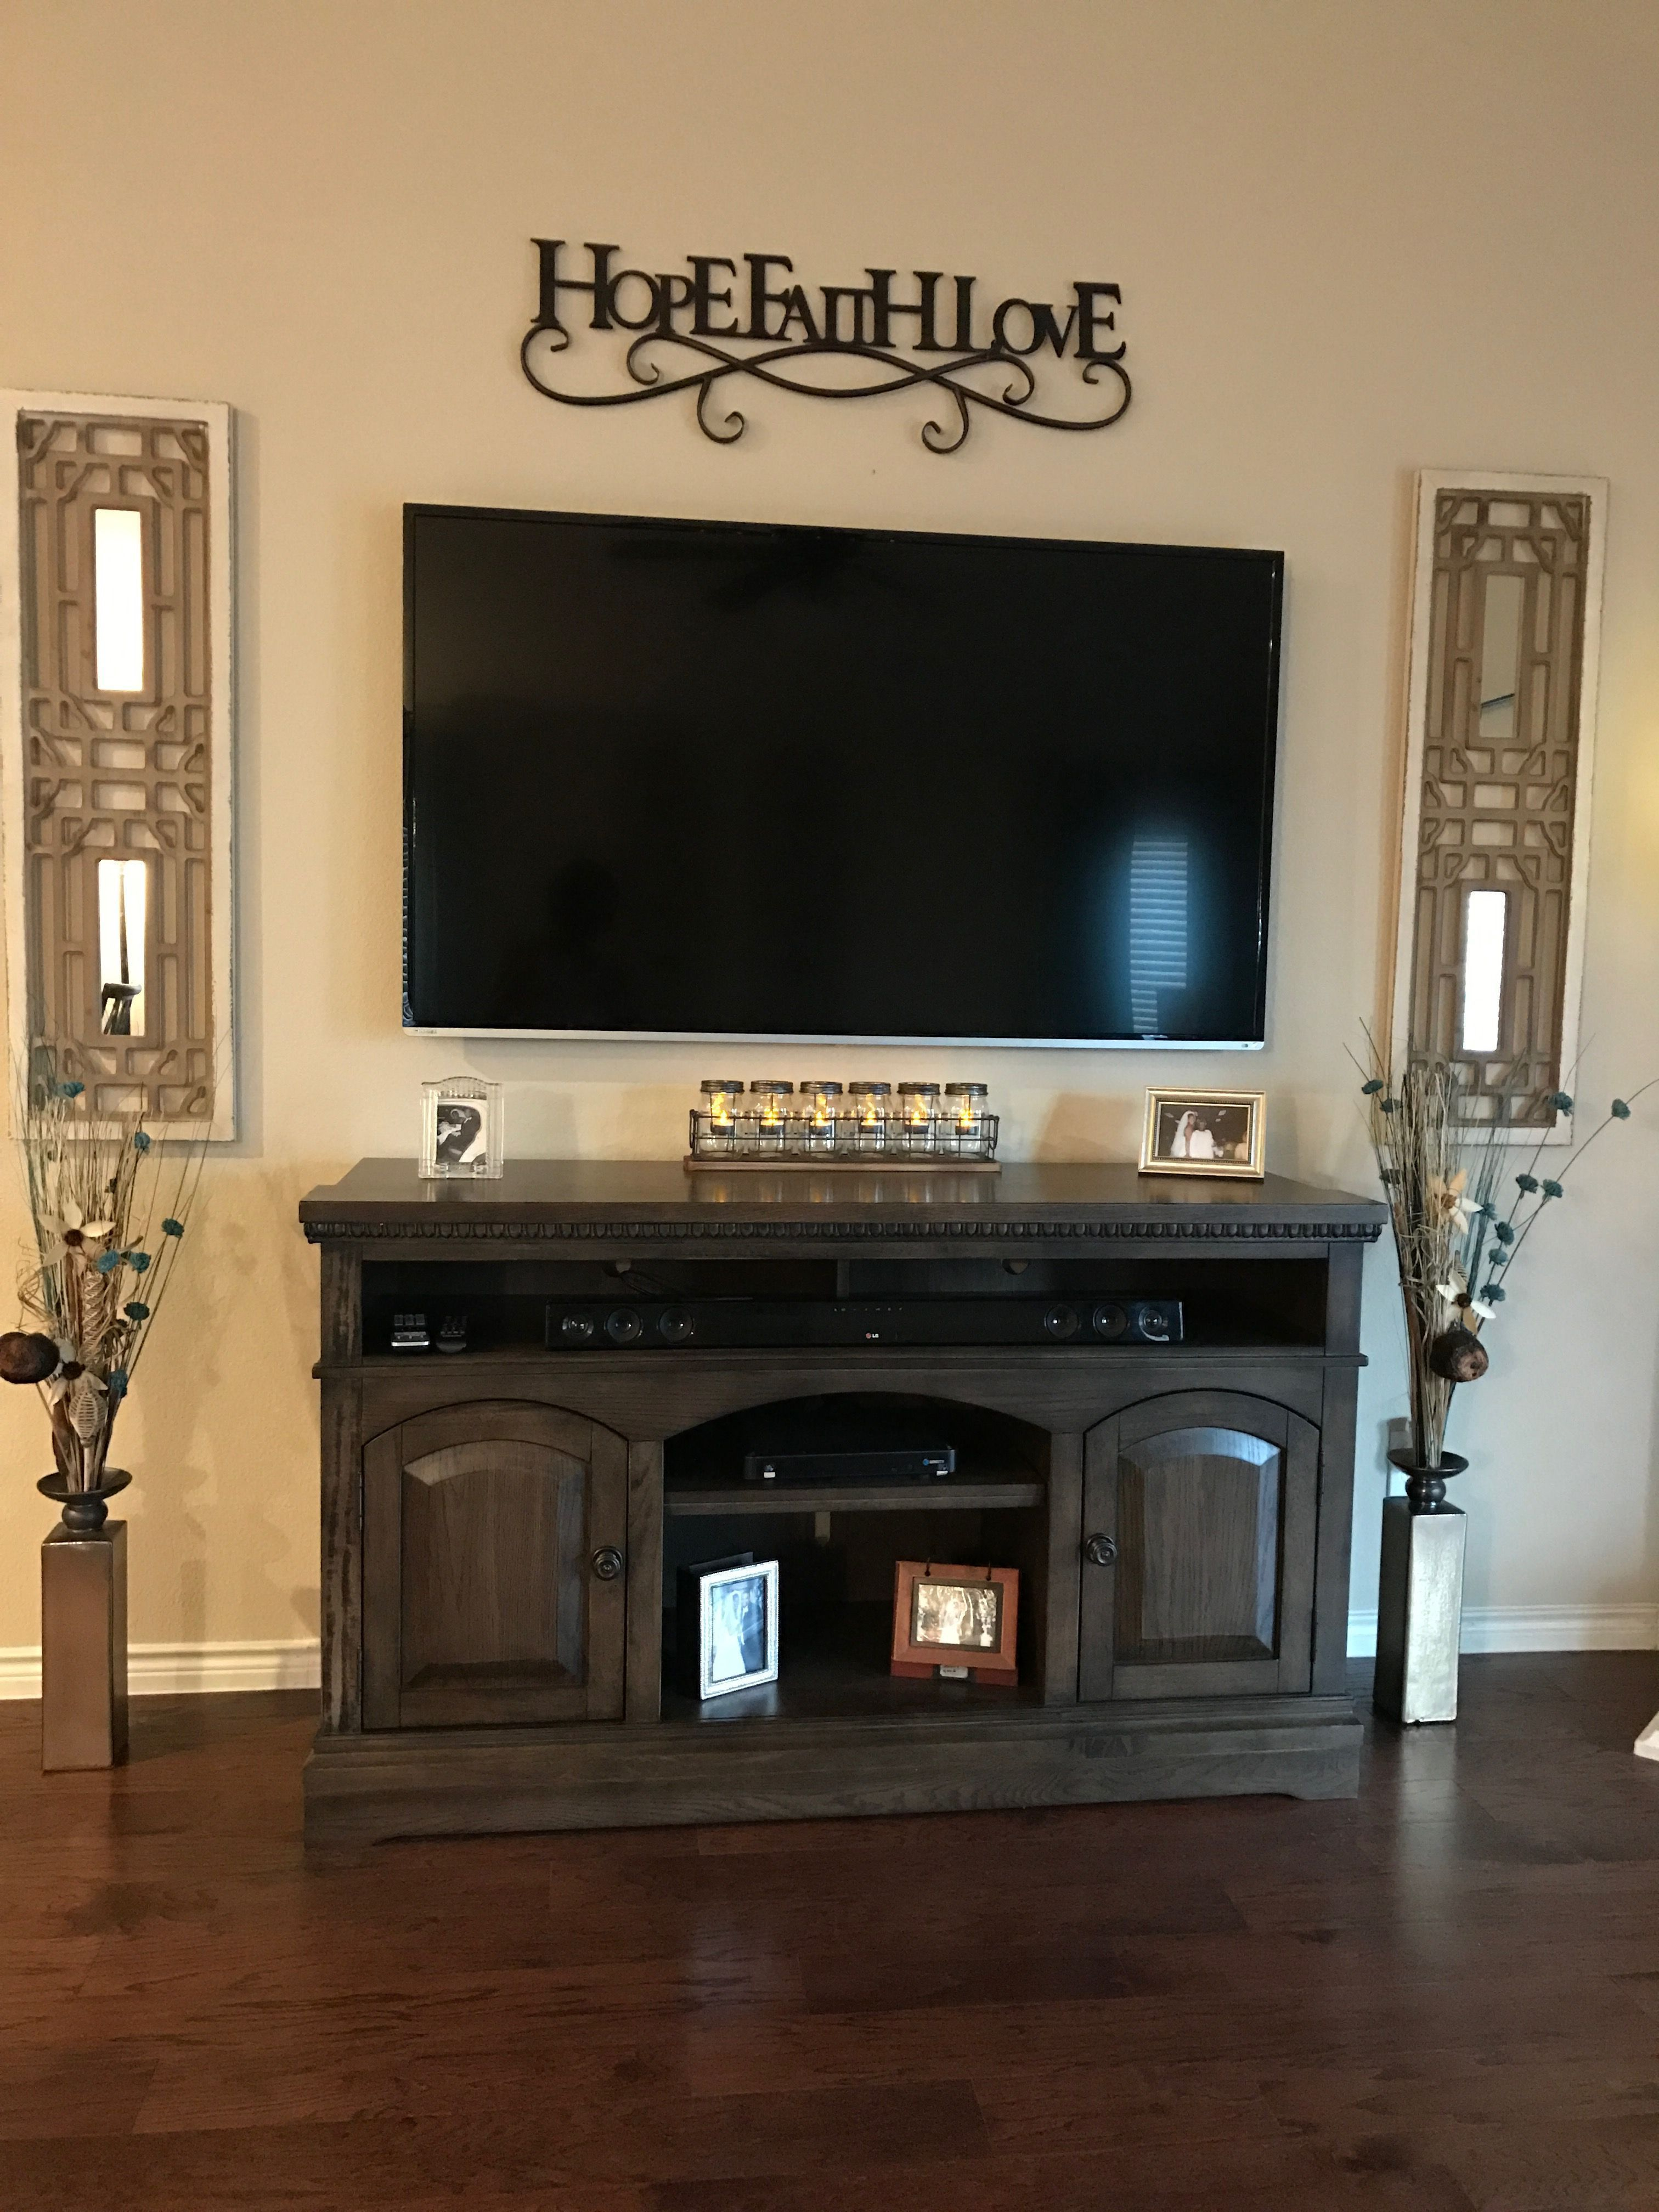 This Is Just For You Who Has A Diy Tv Stand Ideas In The House Tvstand Diy Inspire Tv Stand Ideas For Tv Decor Farmhouse Decor Living Room Tv Stand Designs